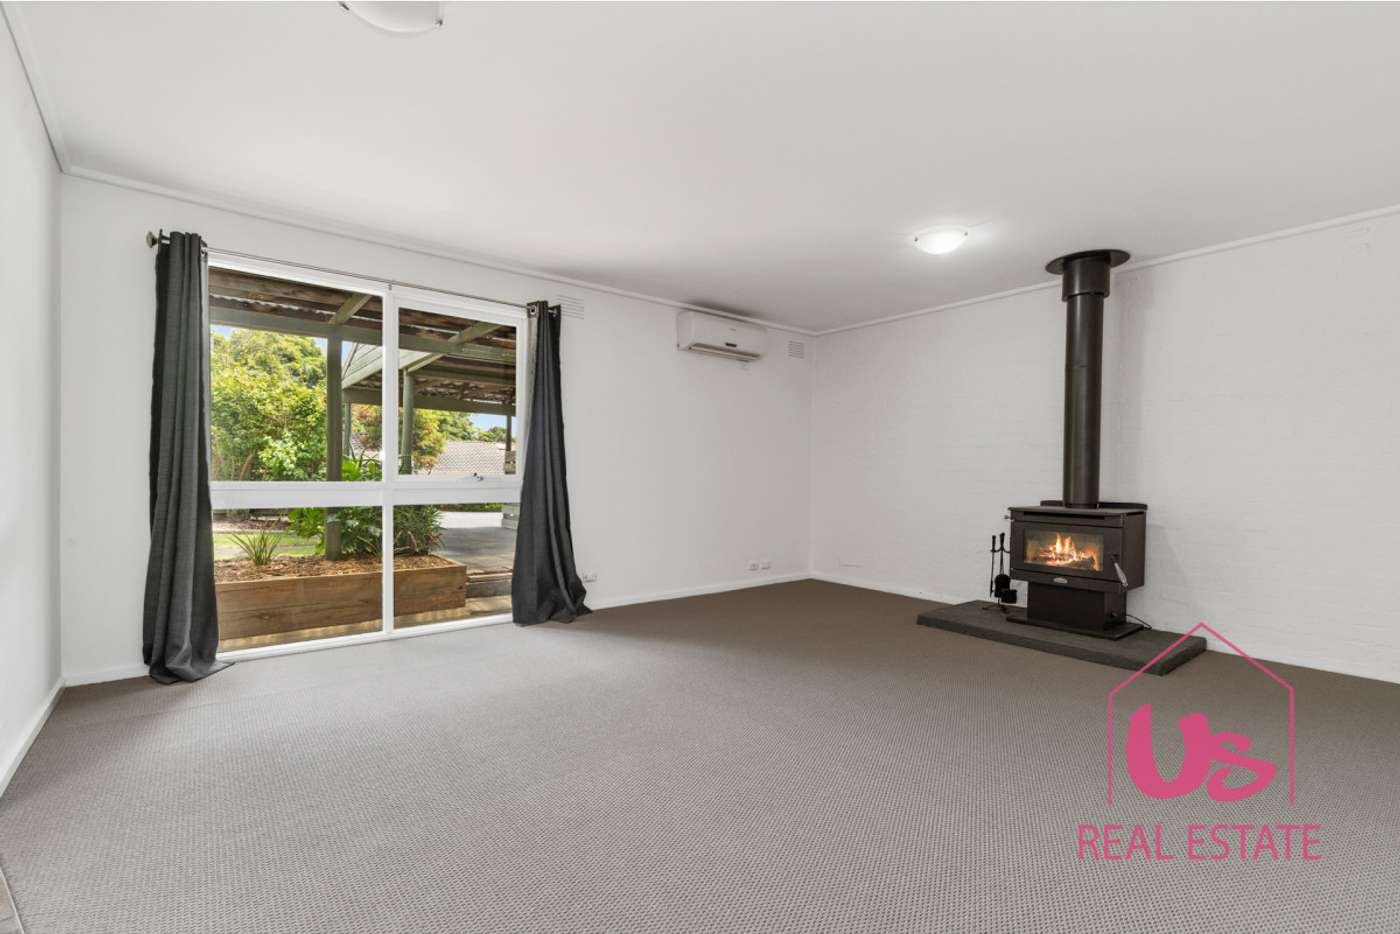 Sixth view of Homely unit listing, 9/12-14 Hill Street, Frankston VIC 3199